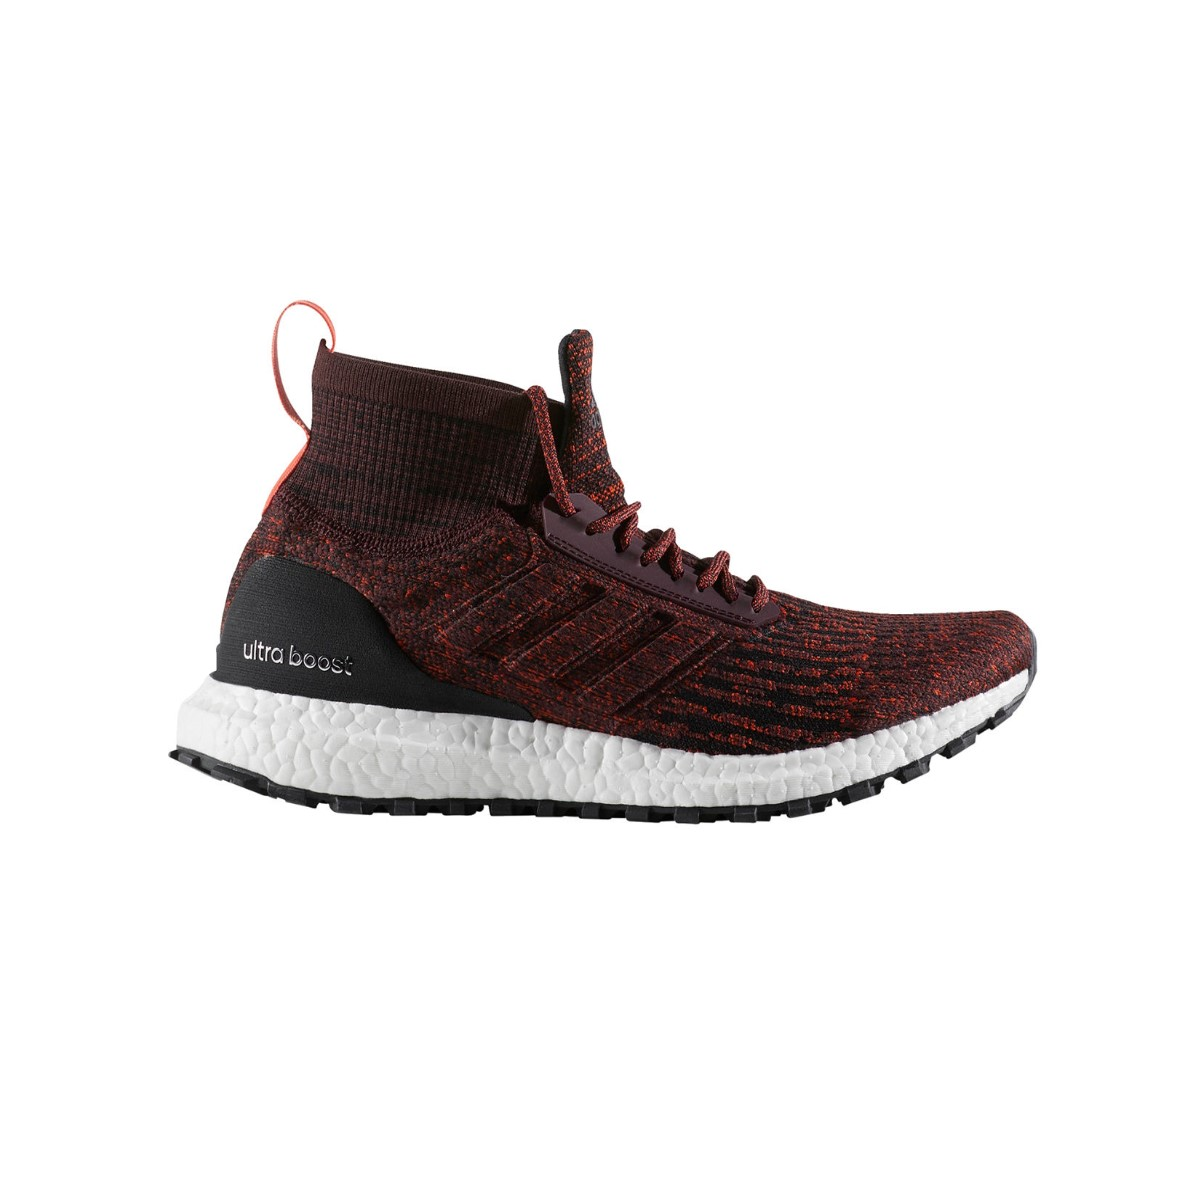 29c44fc732f11 Adidas Ultraboost All Terrain Men s Shoes - ALTON SPORTS